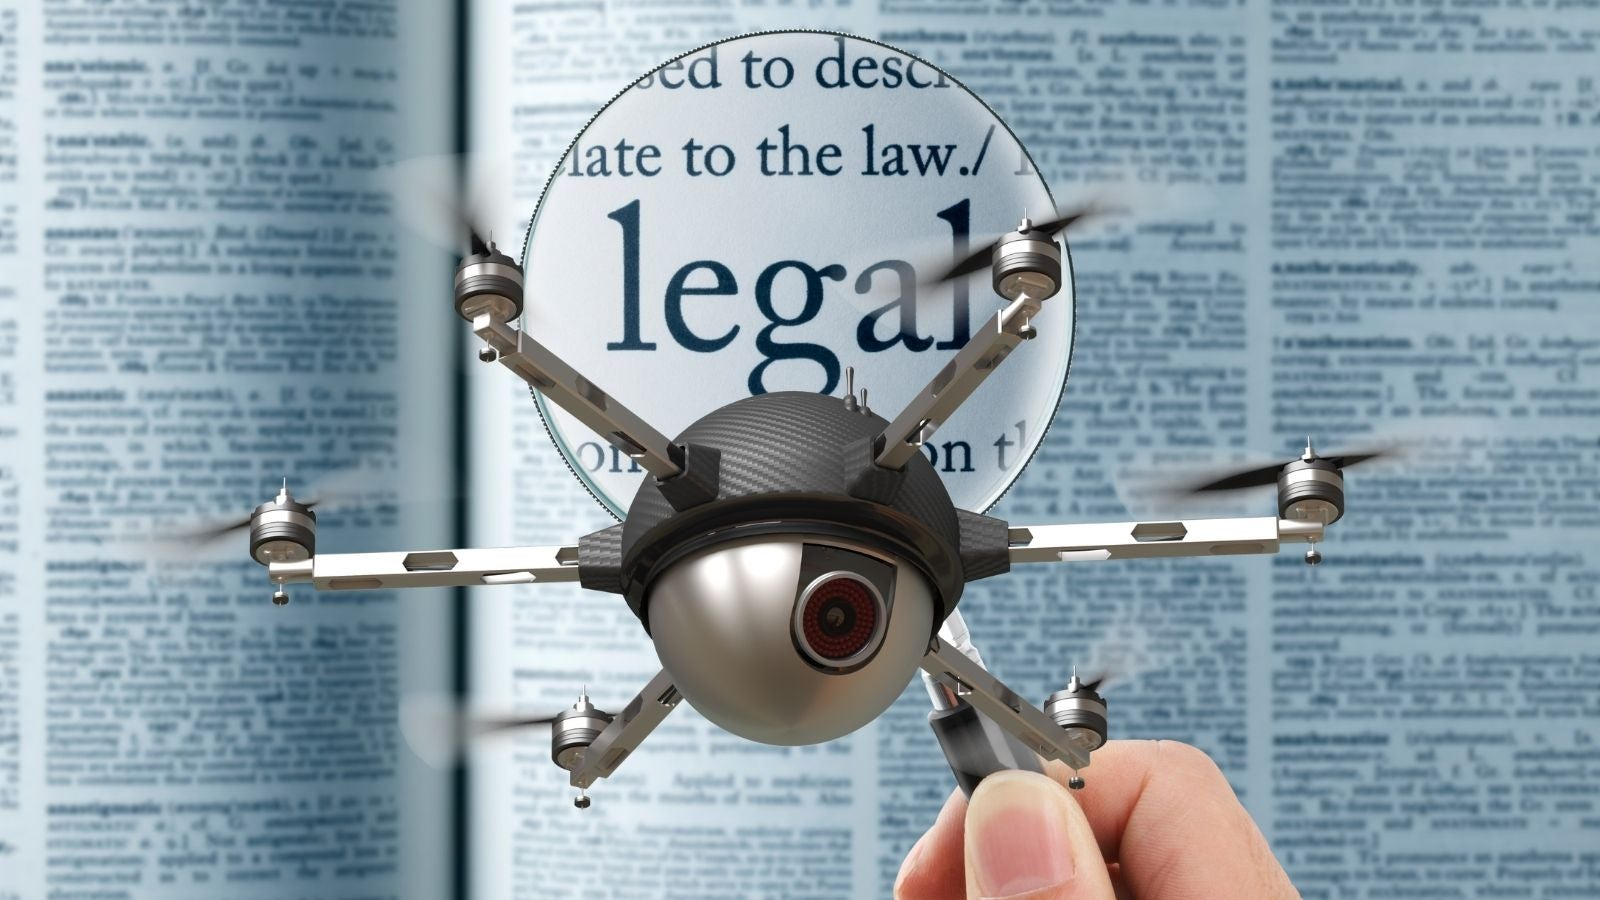 Legality of drones.